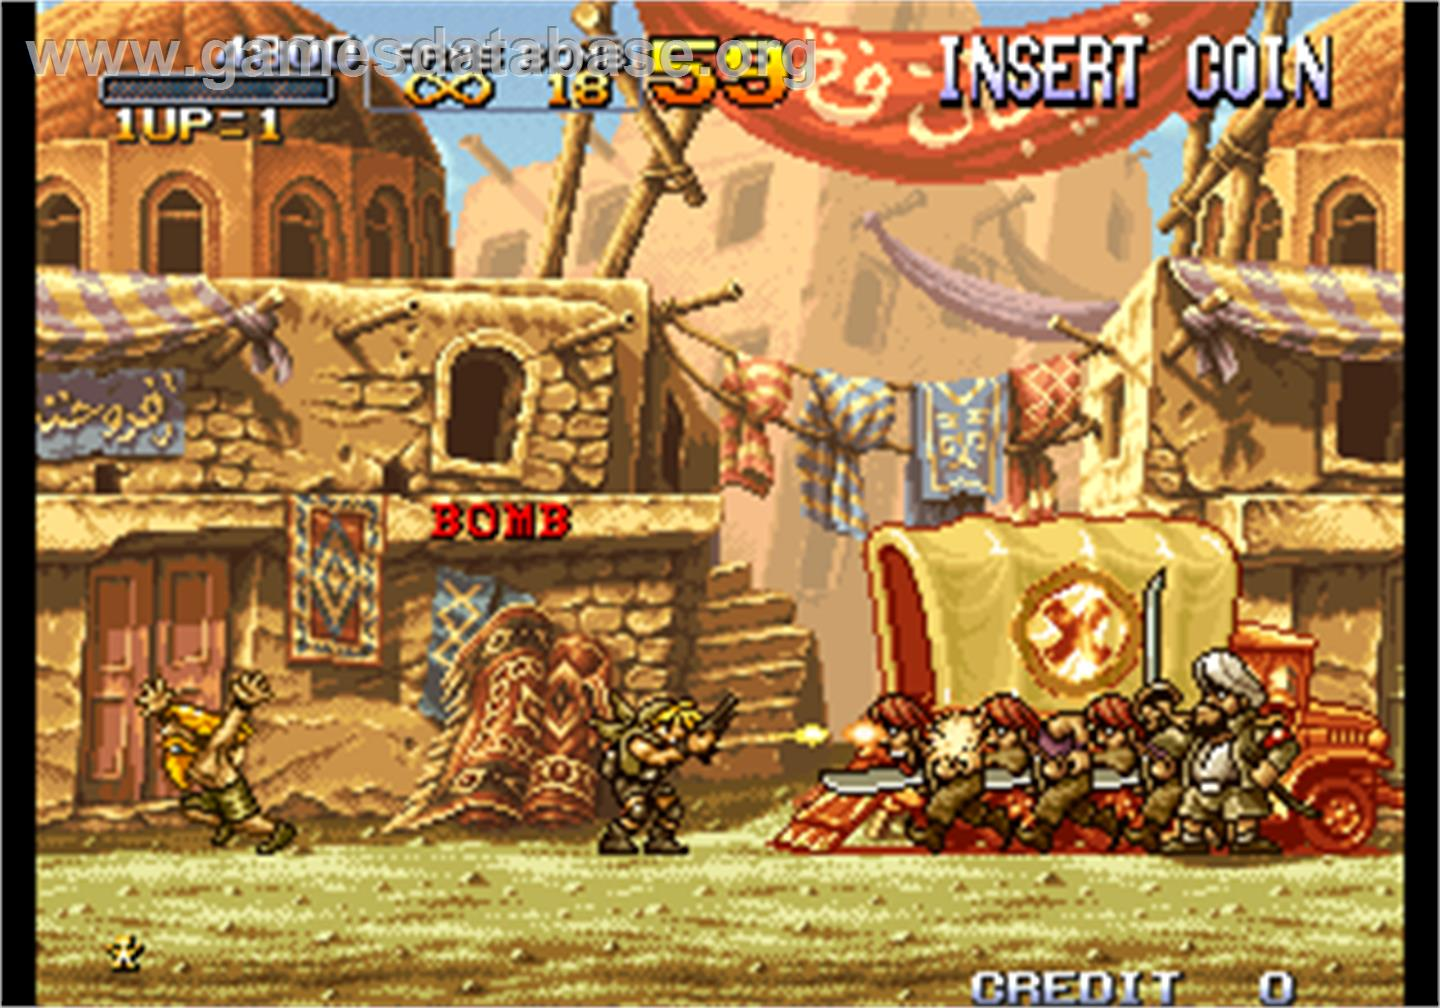 💣 Download neo geo mame rom | SNK Neo Geo roms, games and ISOs to